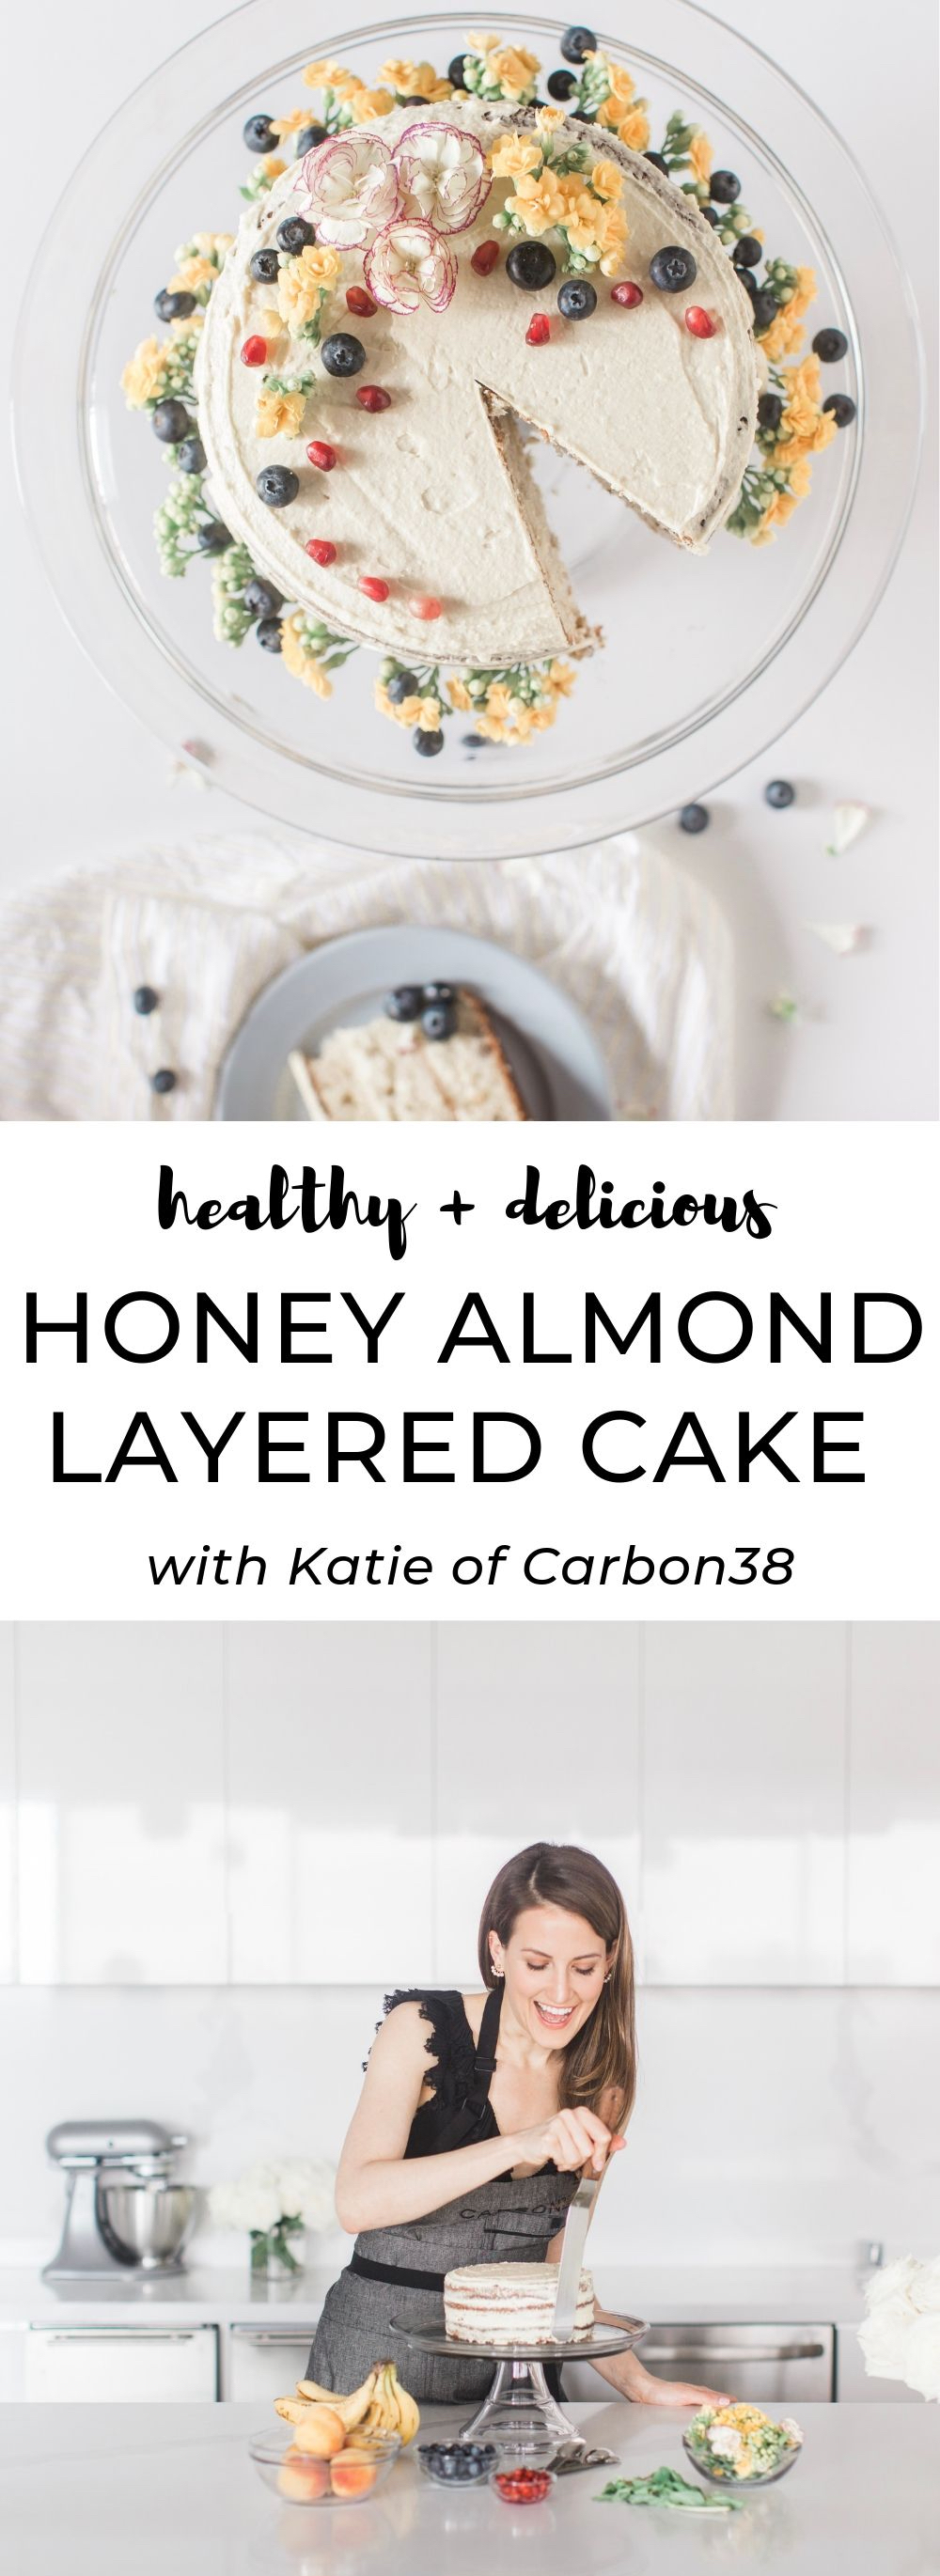 HONEY ALMOND CAKE RECIPE